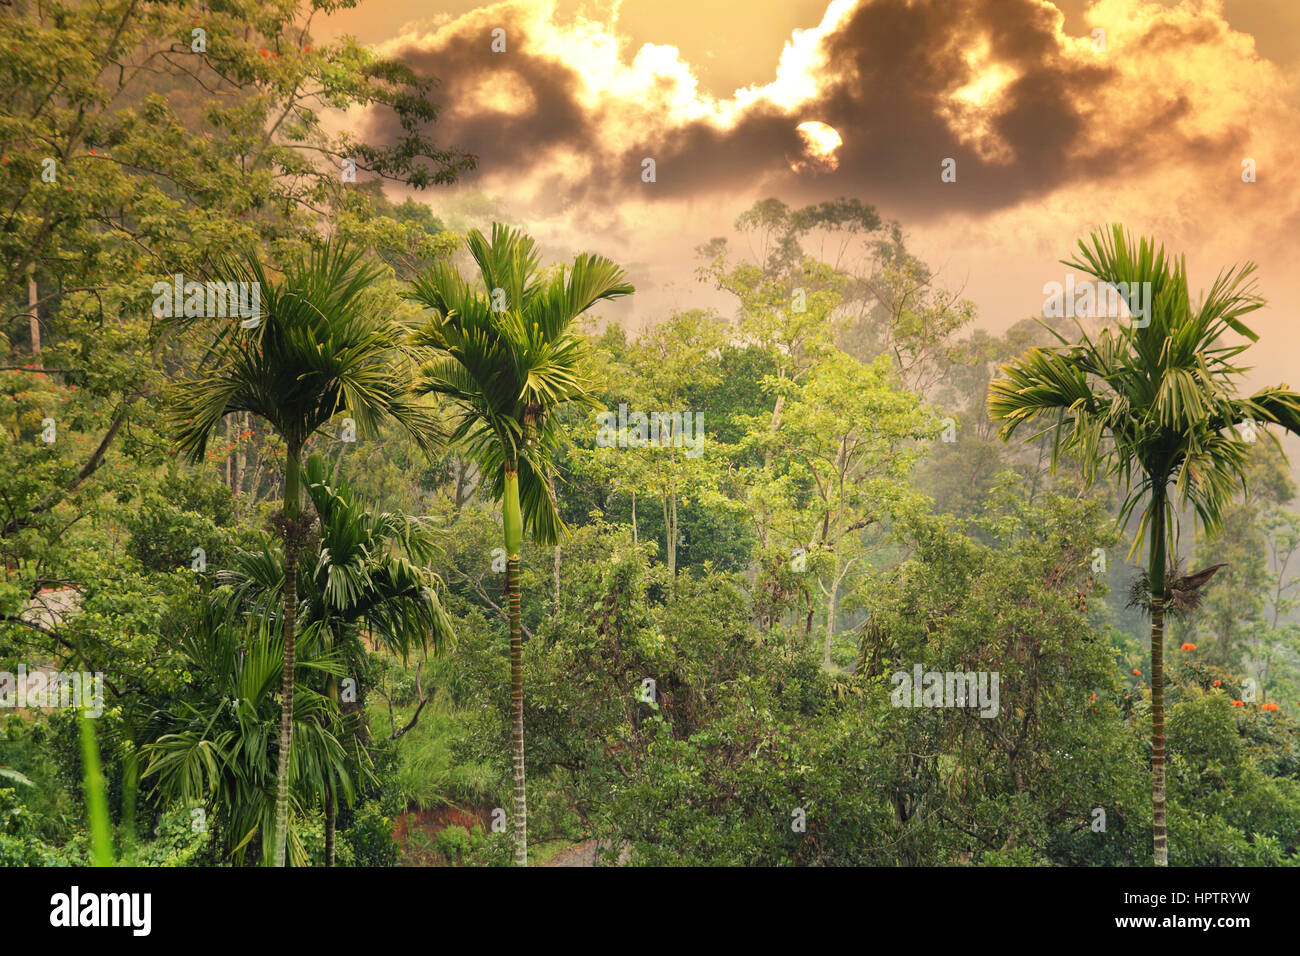 Sunset in jungle Photo Stock